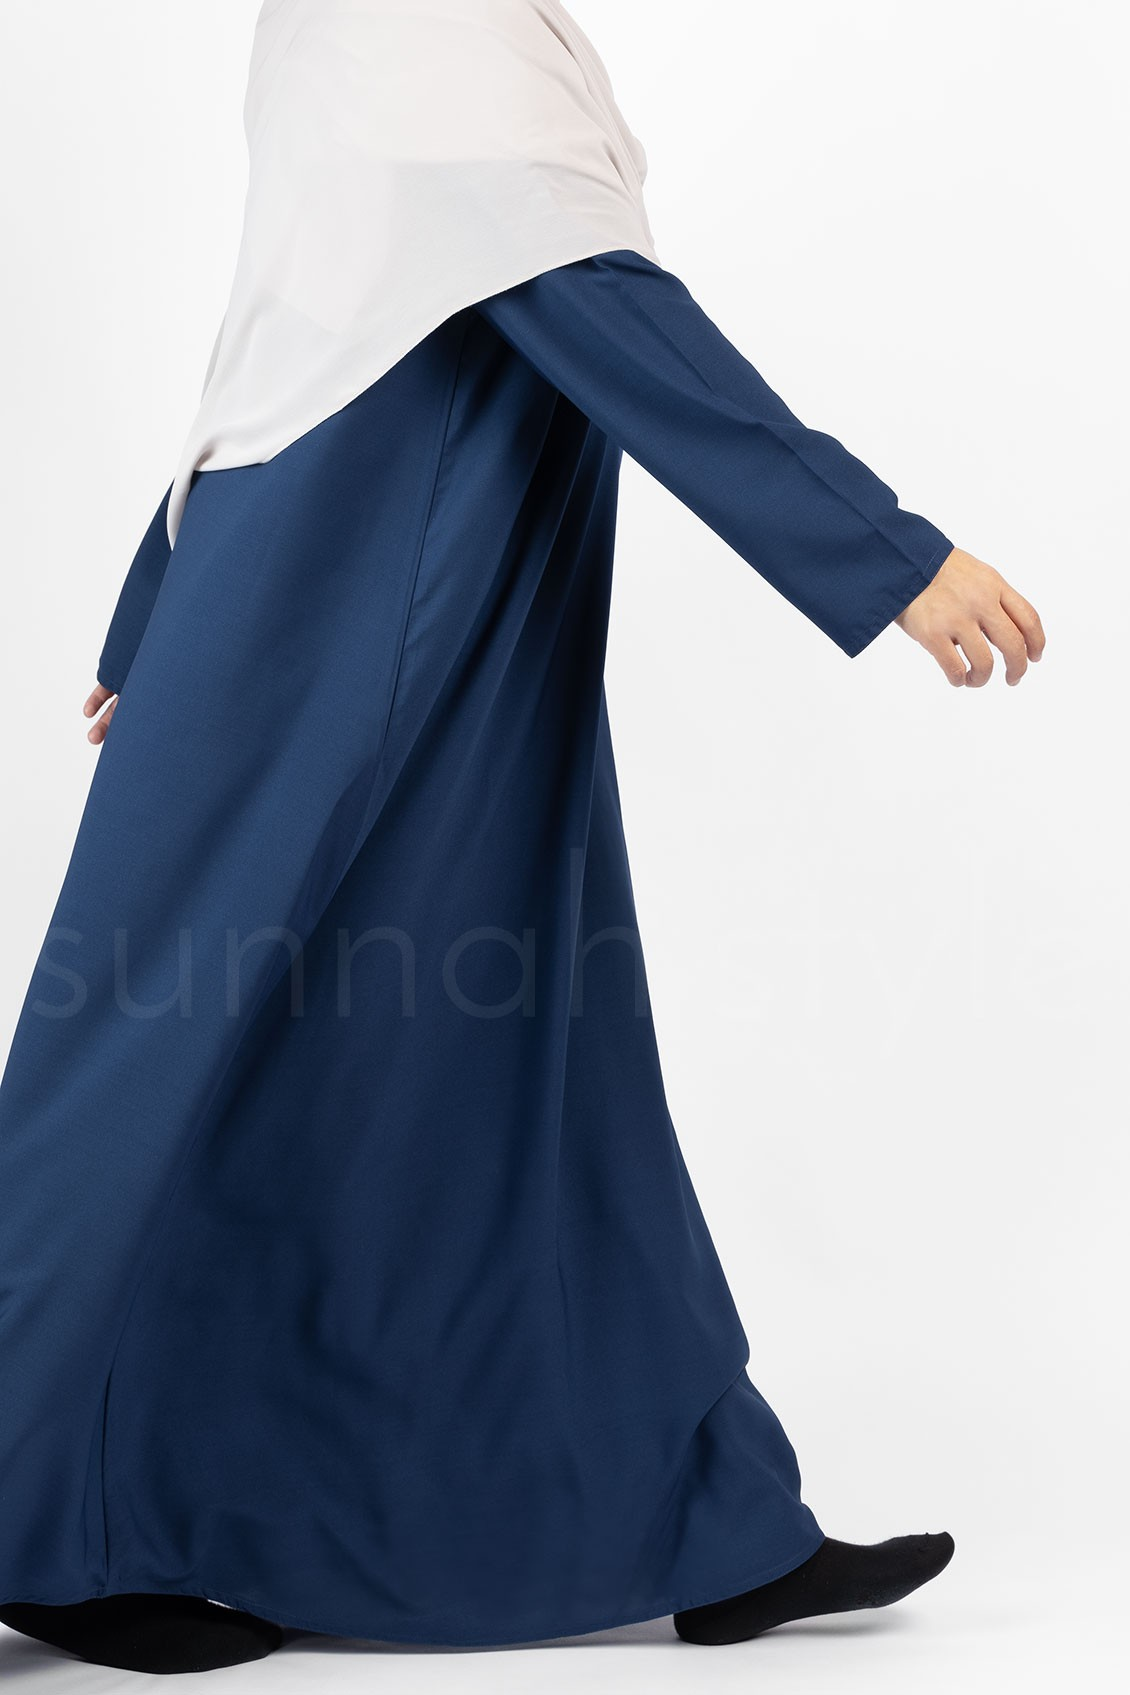 Sunnah Style Plain Closed Abaya Marine Blue